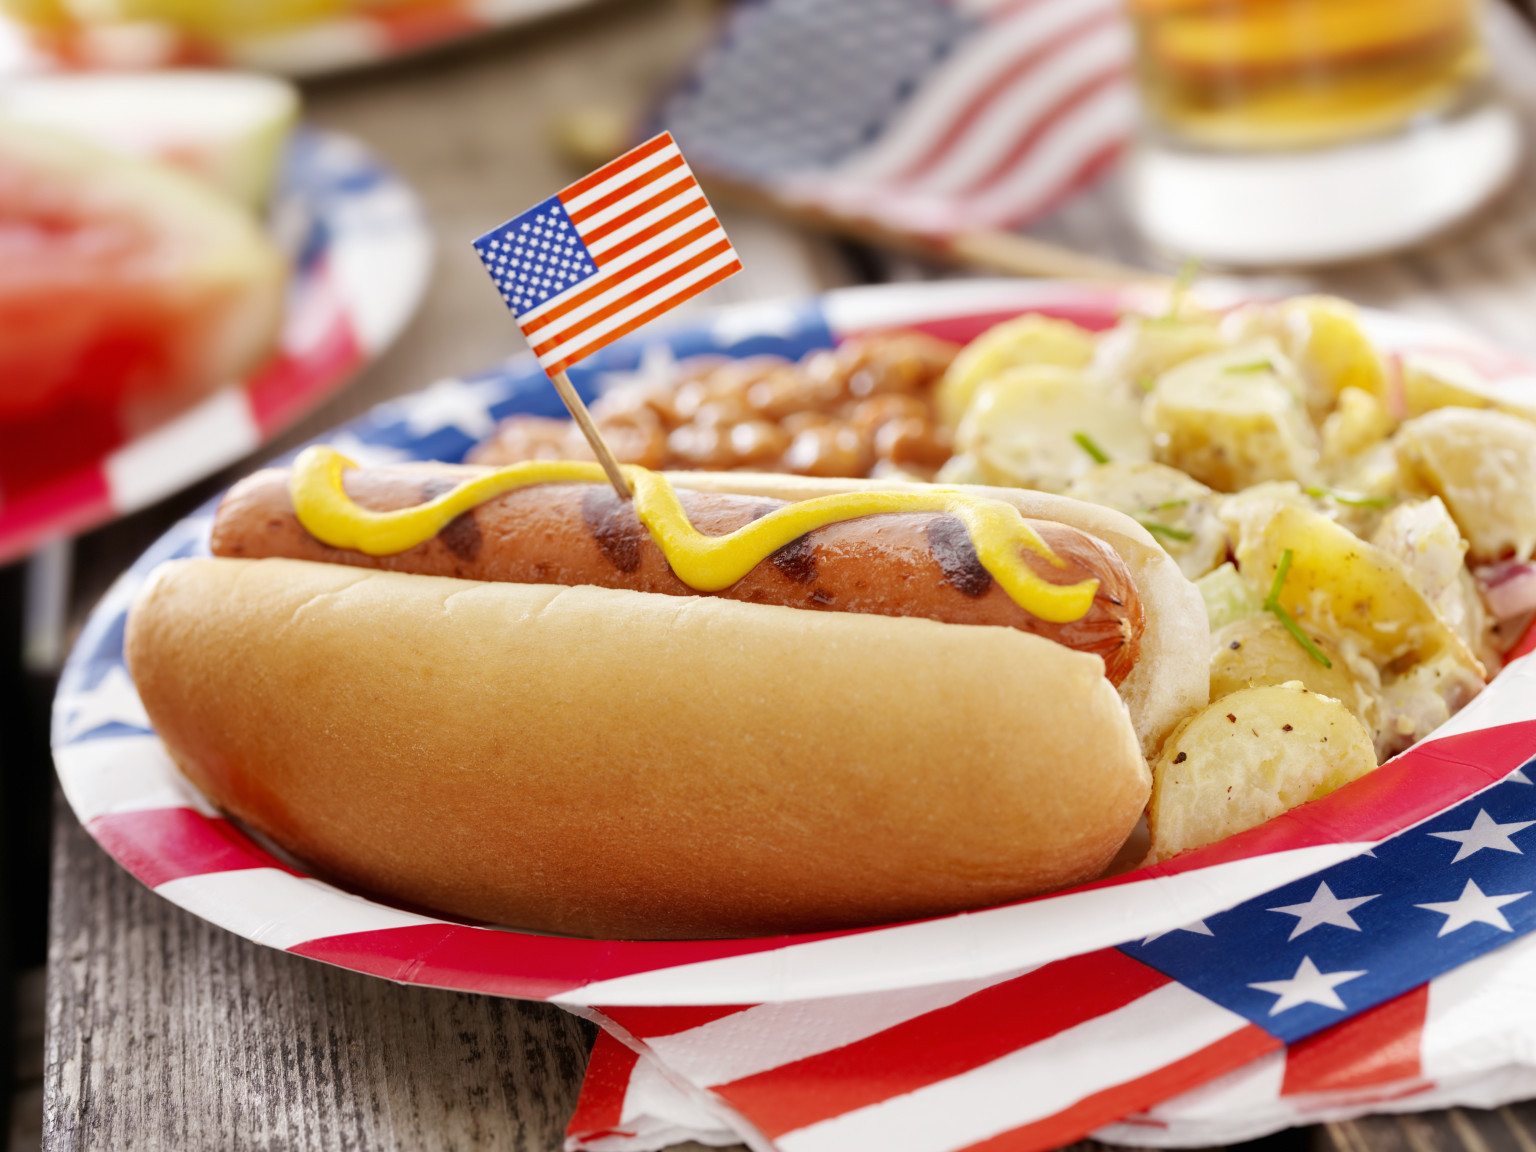 4Th Of July Hot Dogs  July 4th Restaurants In D C Where To Eat In The Nation s